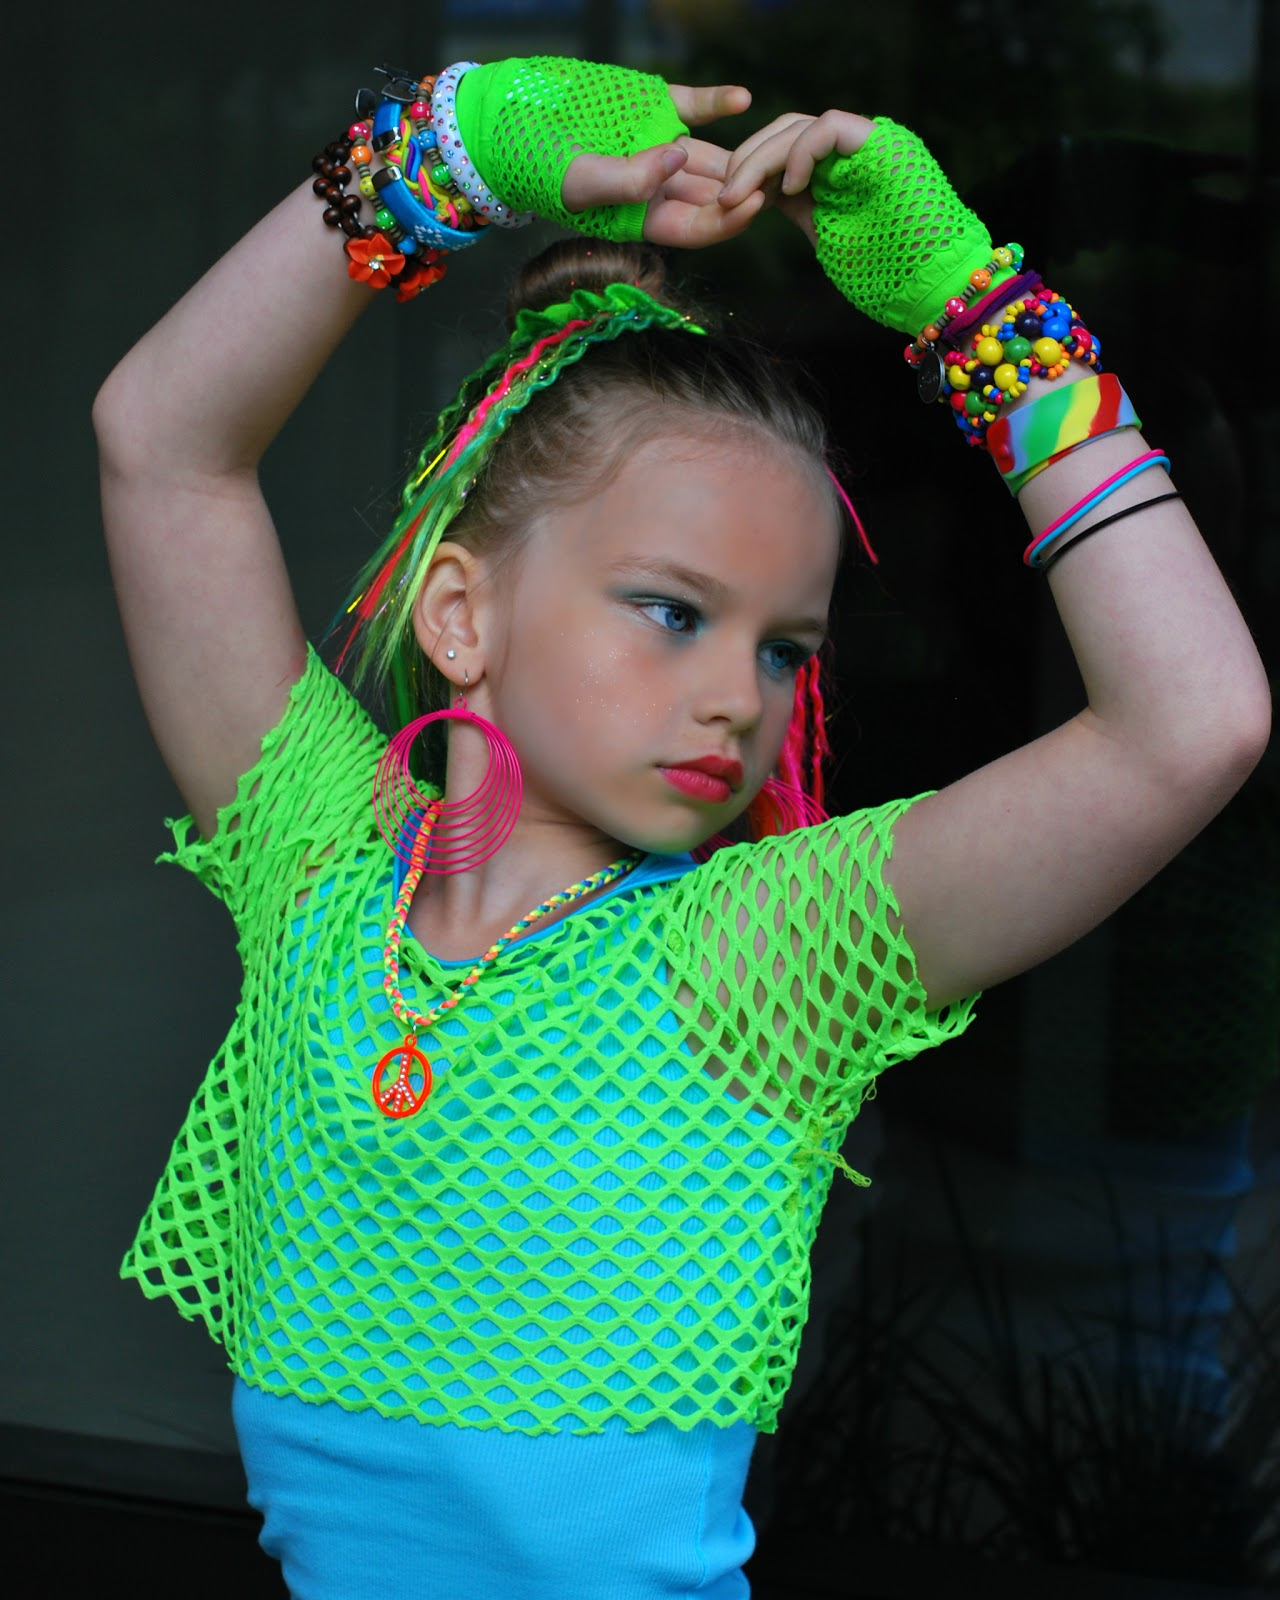 POSE child modeling mag Junior Fashion Experts: May 2012